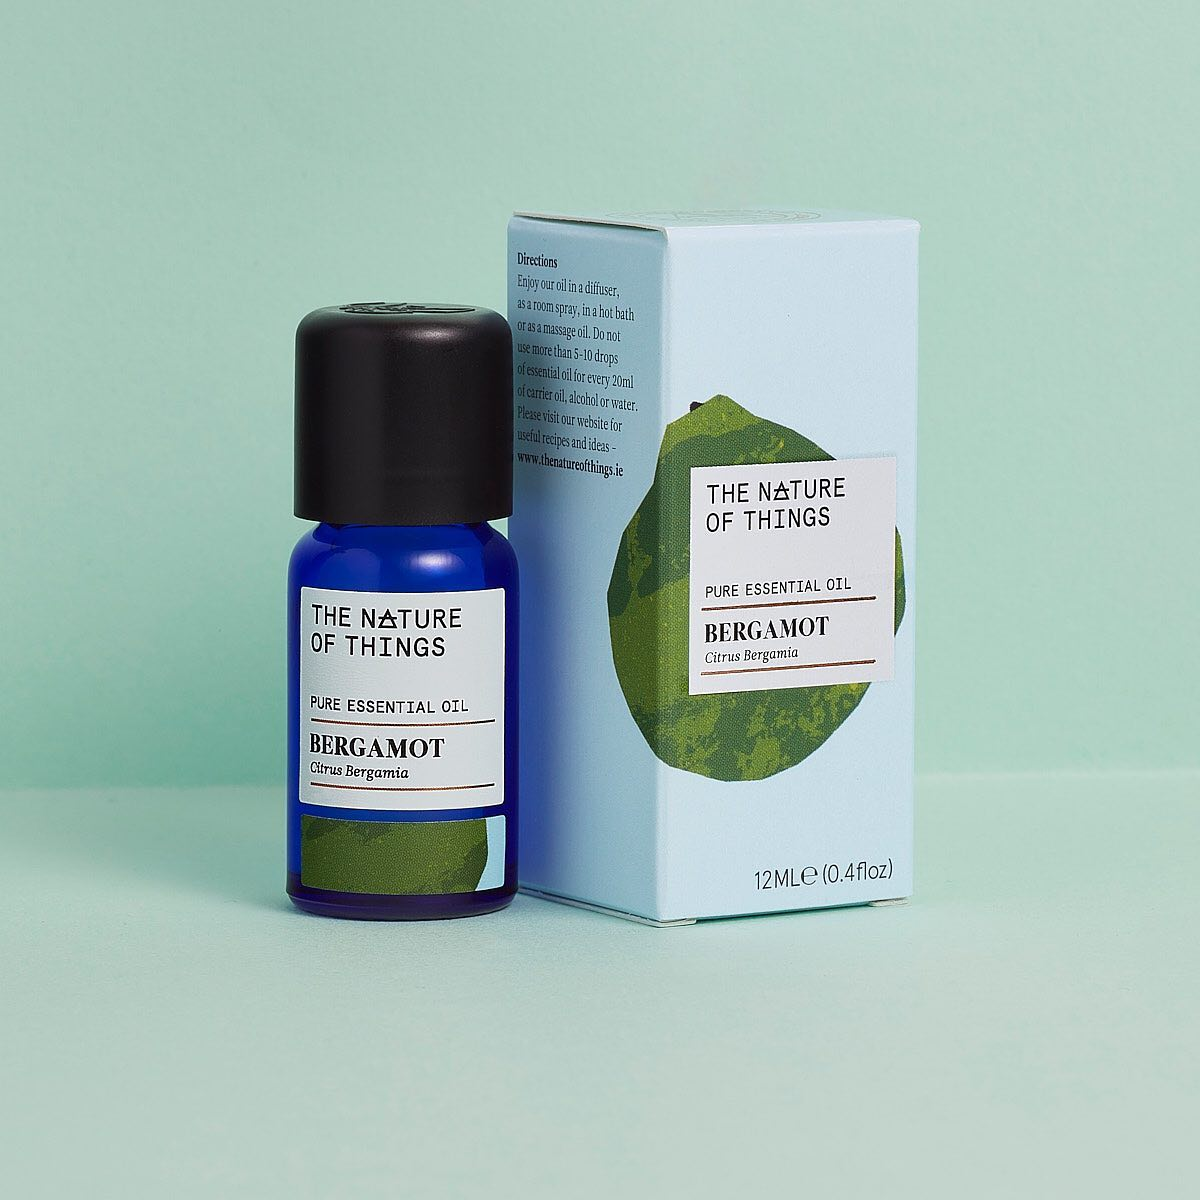 Don't Stress Gift Set - Patchouli, Bergamot & Petitgrain Oils GIFTING | CL The Nature of Things